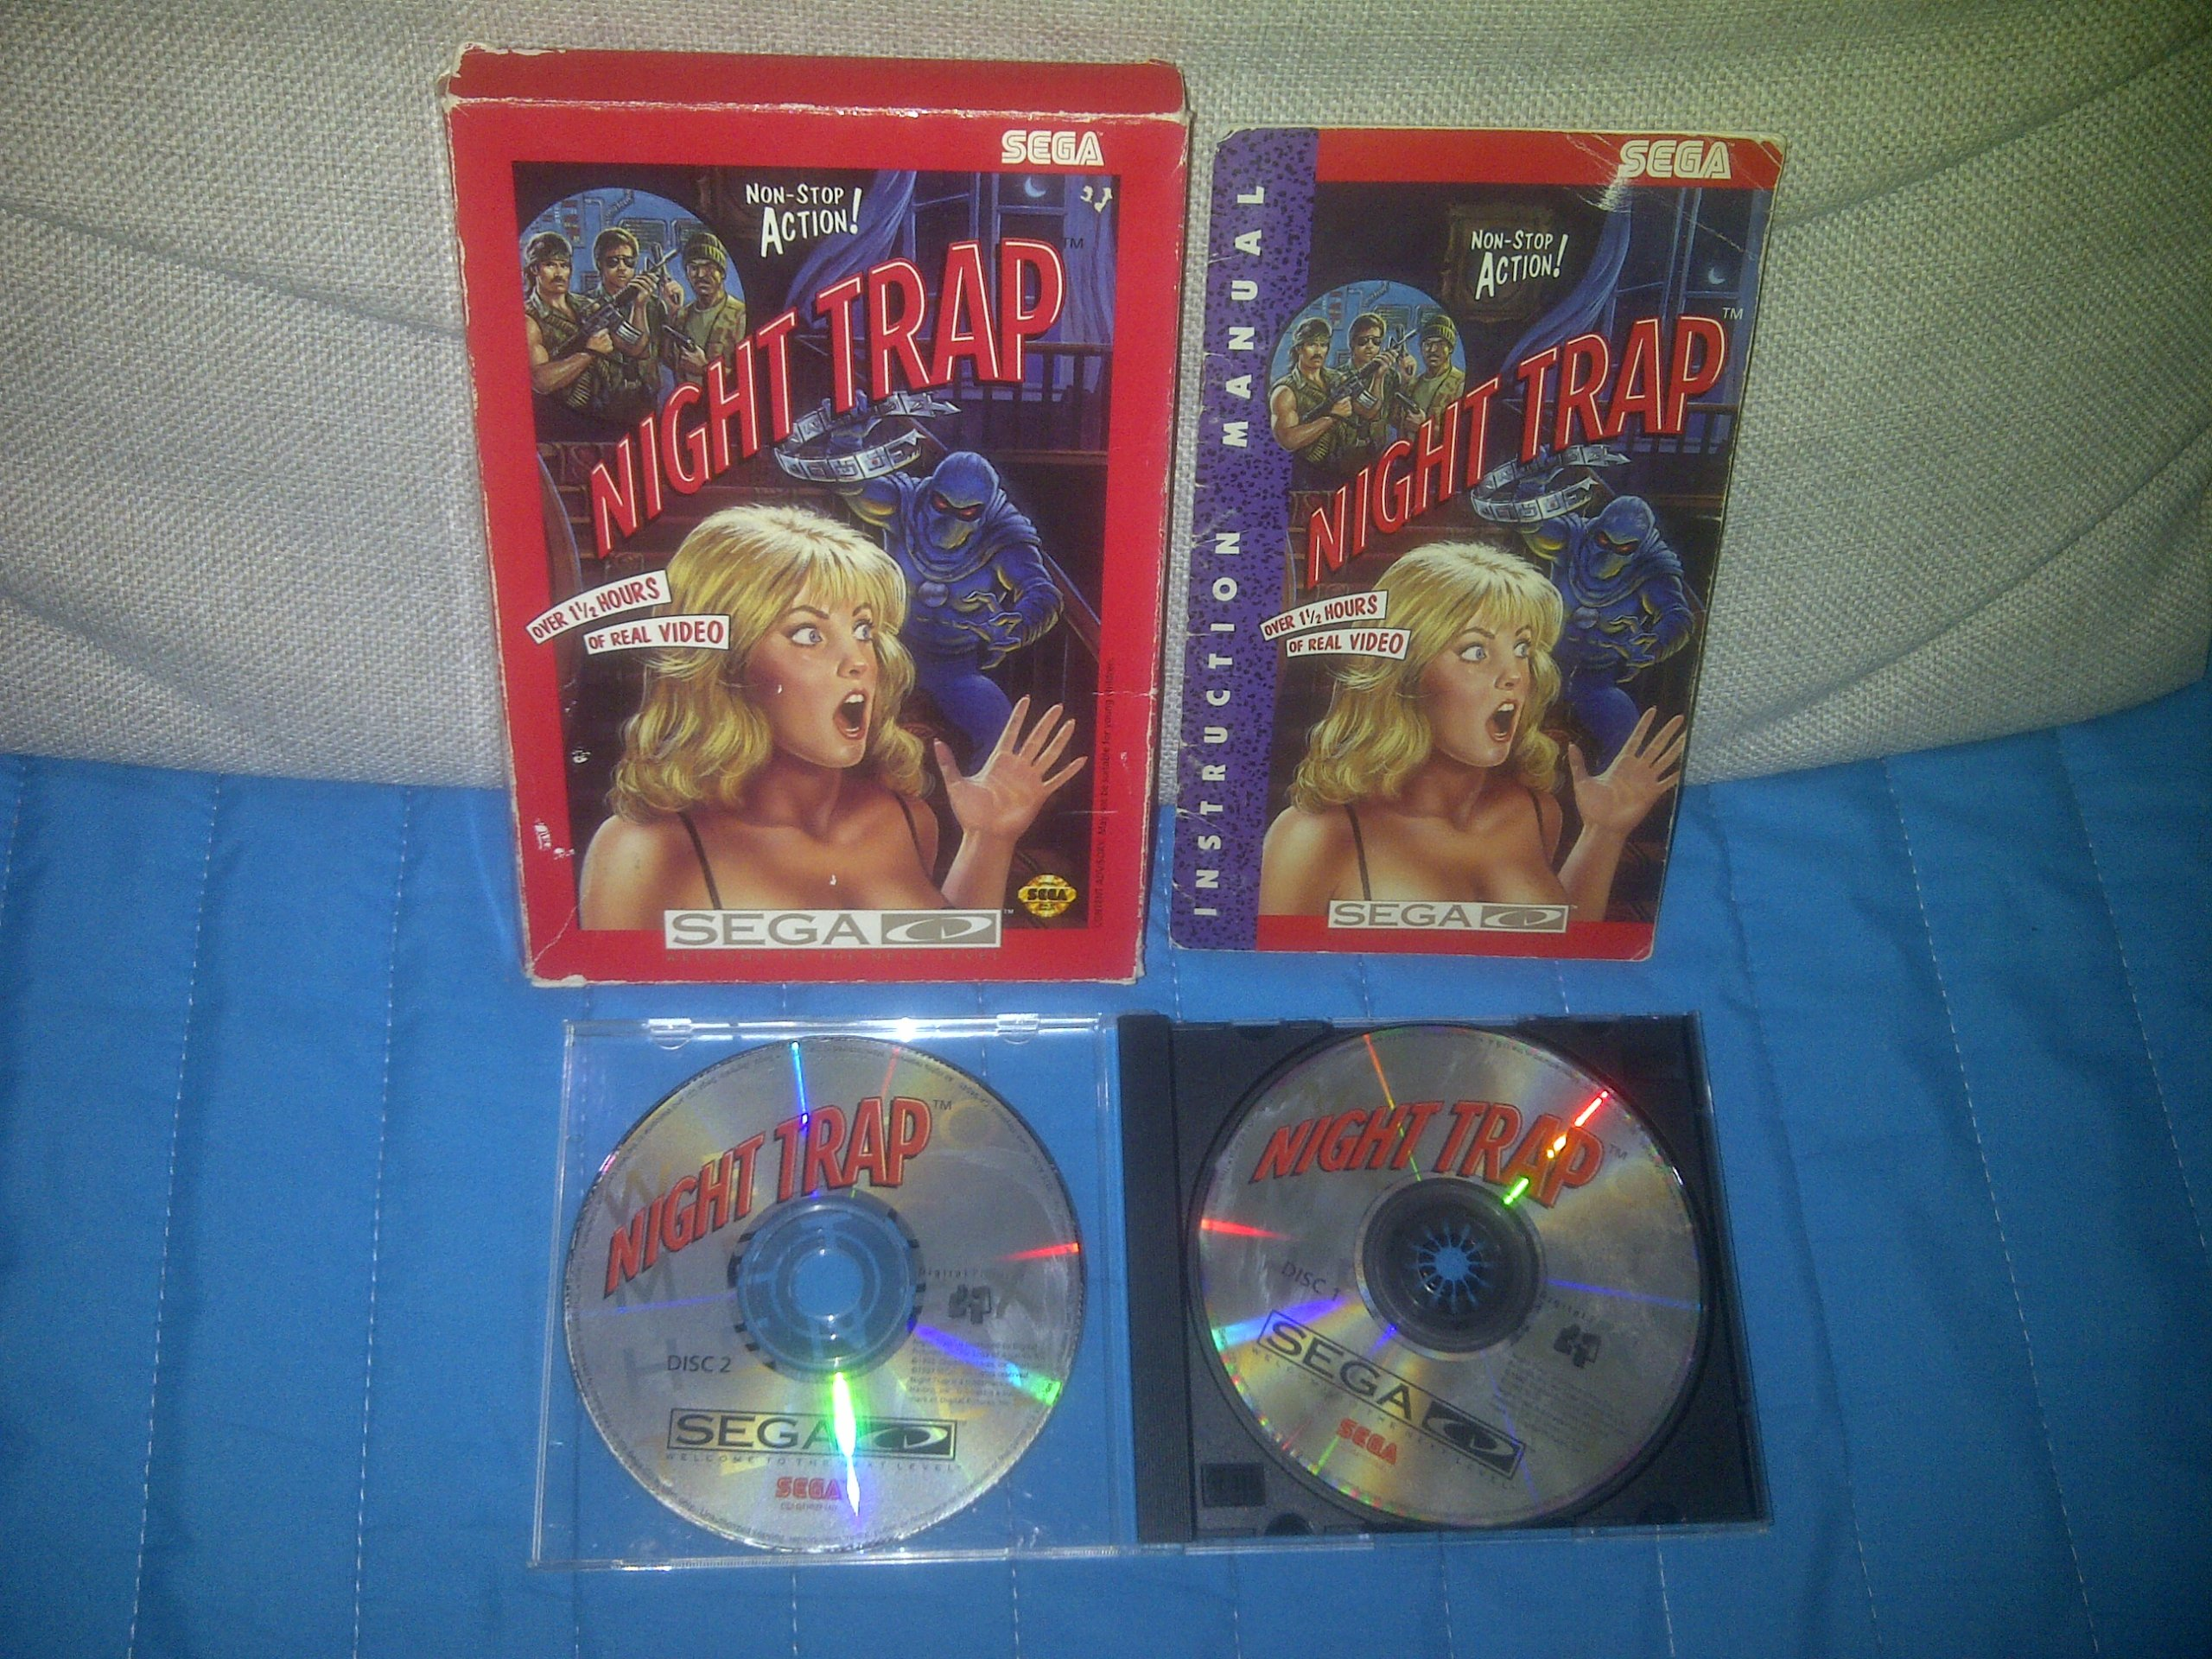 Night Trap / Sega CD / NTSC-USA / CartoonBox - 7681141876